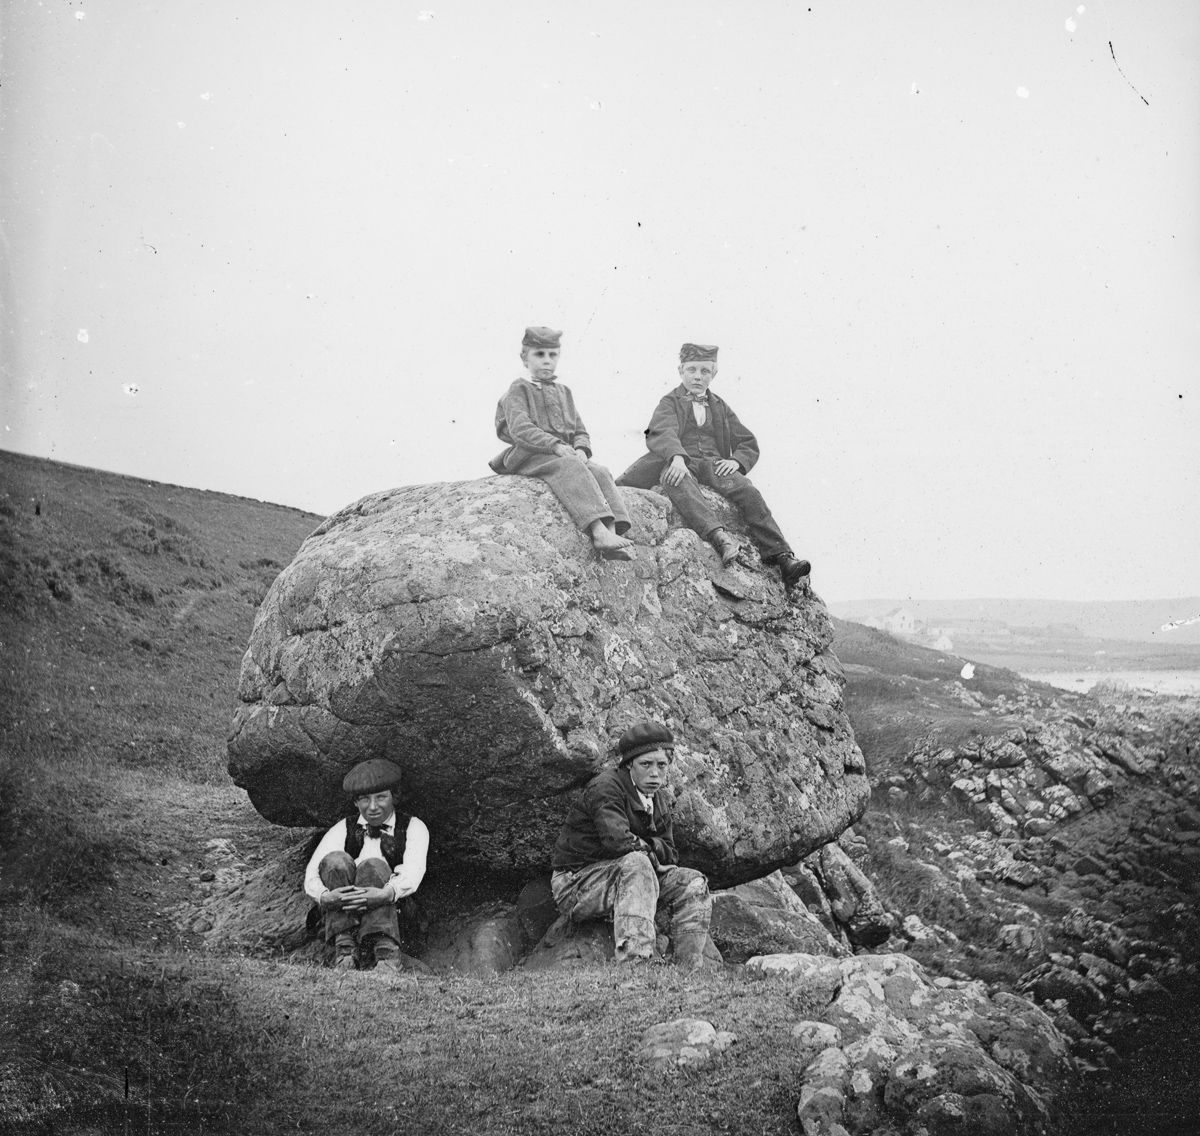 Four boys at the Rocking Stone at Islandmagee, County Antrim.1870